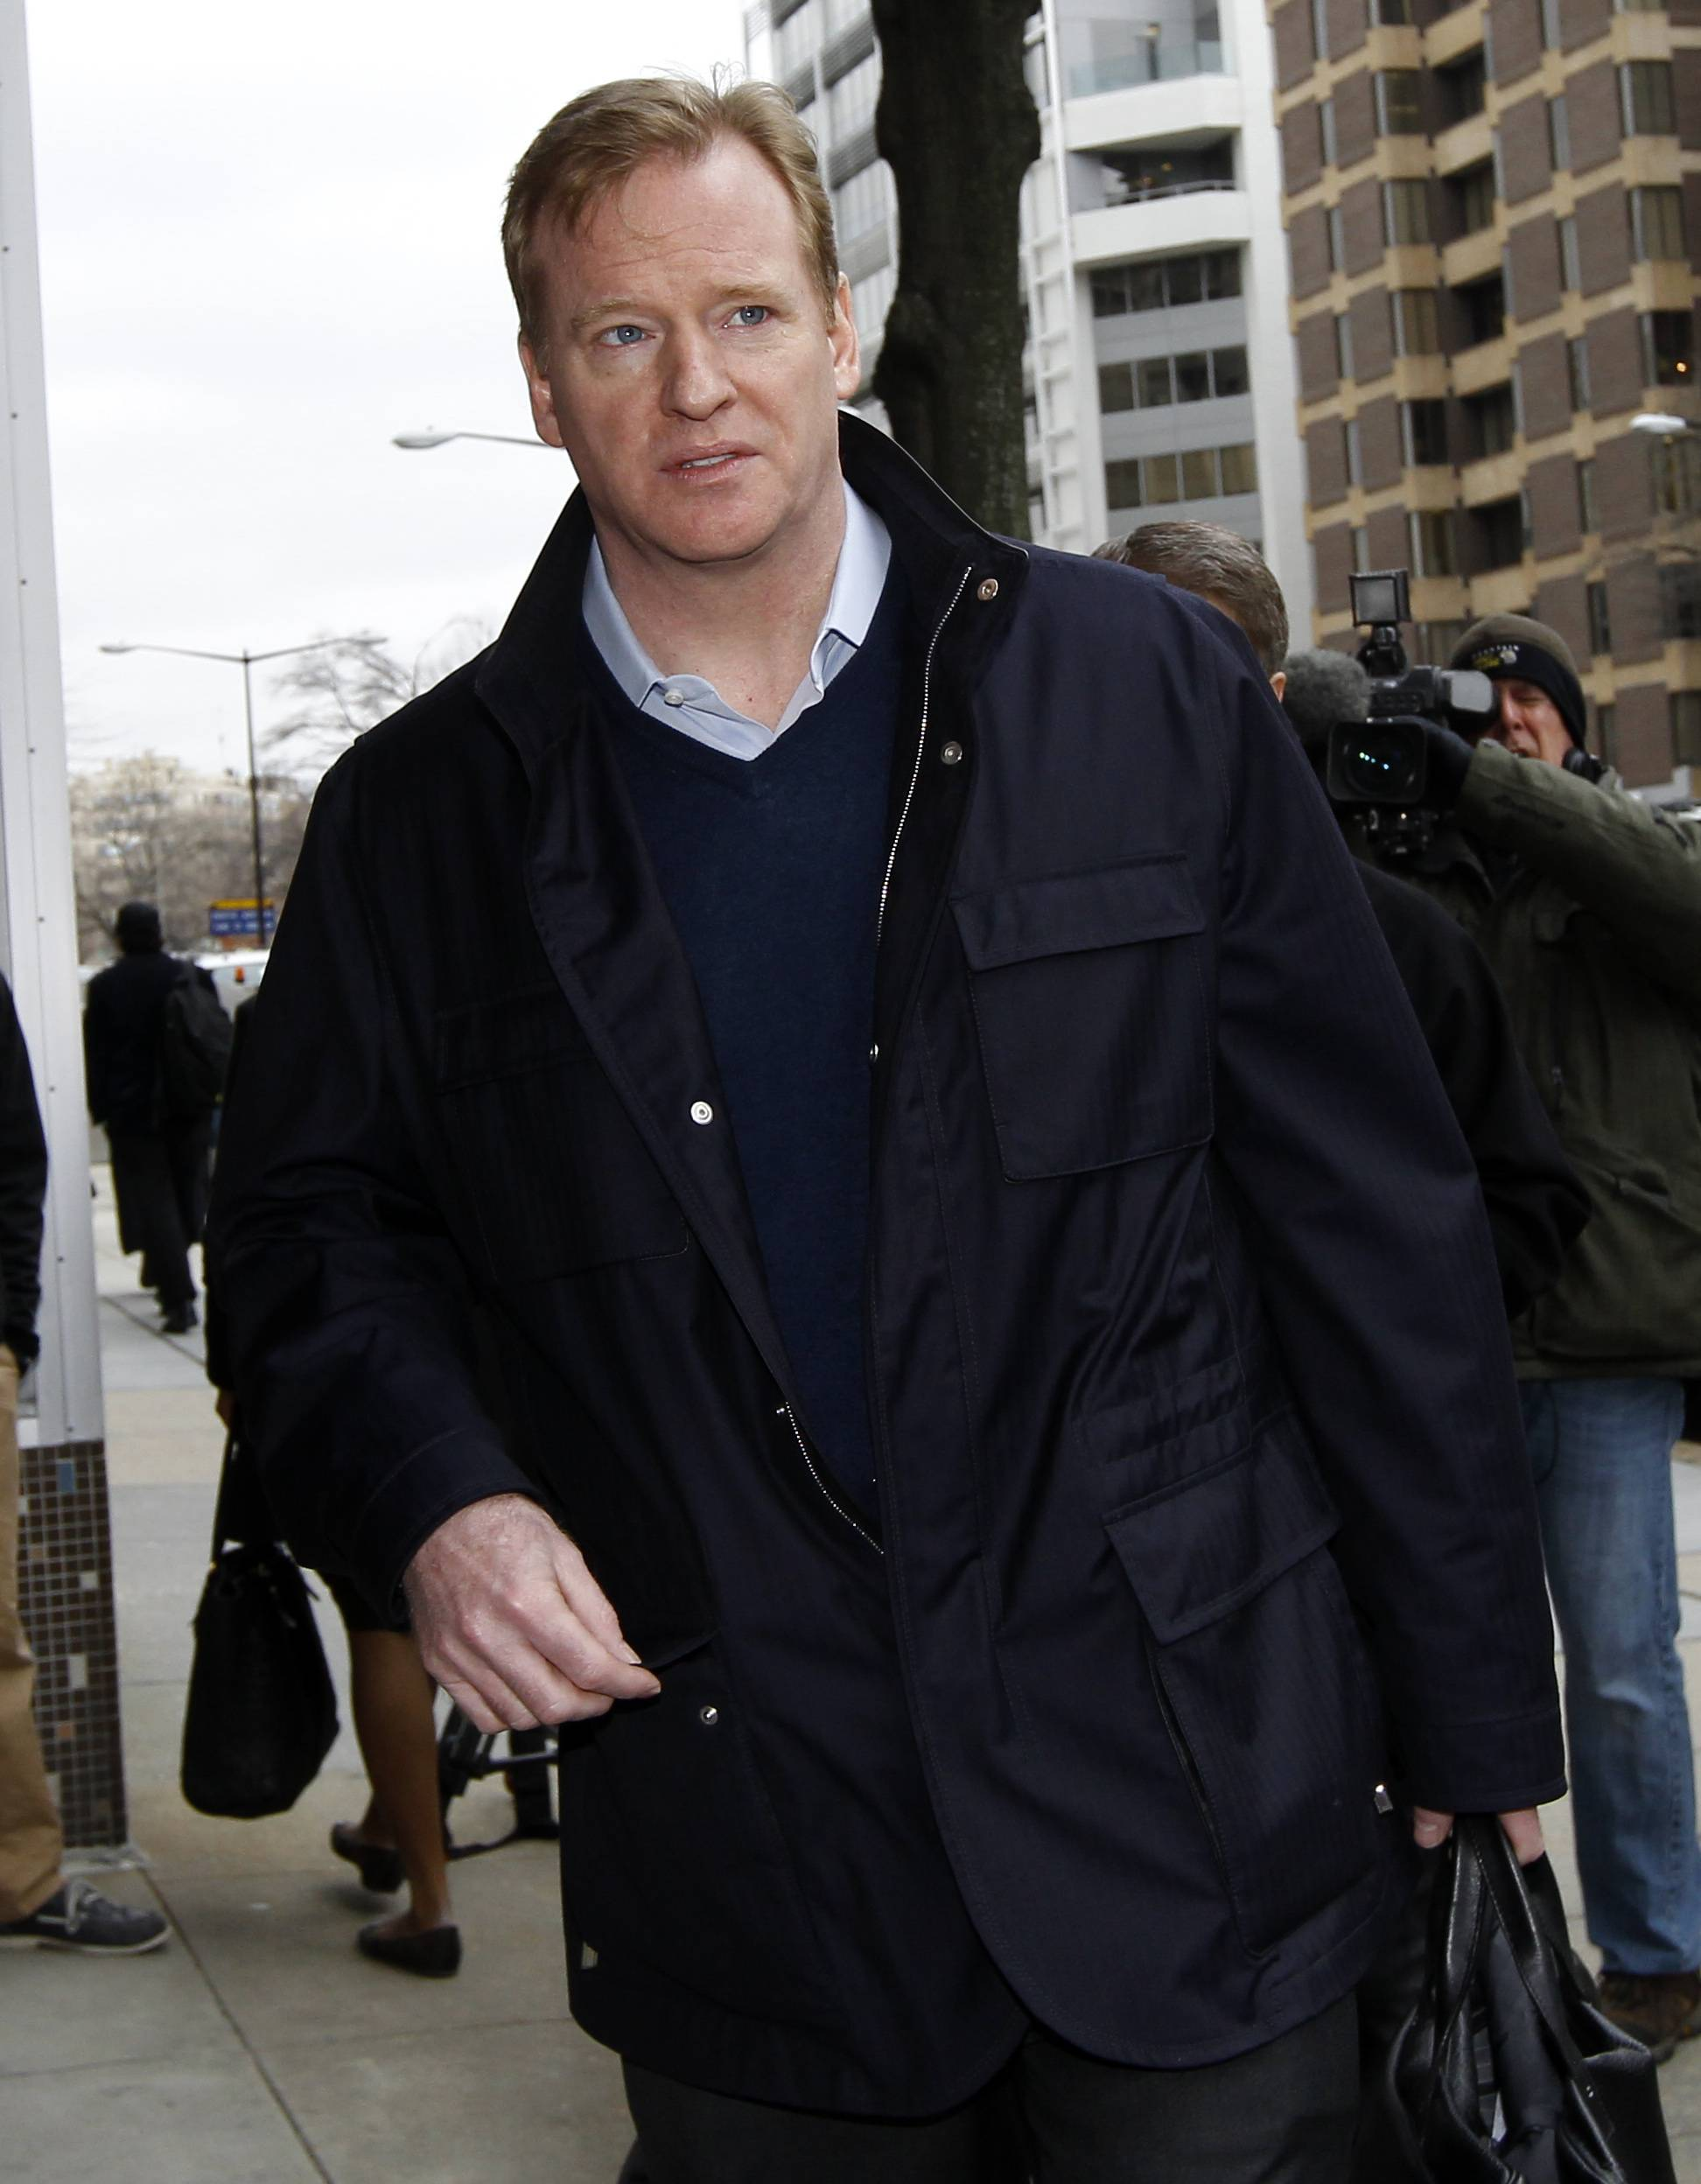 Roger Goodell, NFL commissioner, arrives for negotiations with the NFL Players Association involving a federal mediator in Washington, Wednesday.